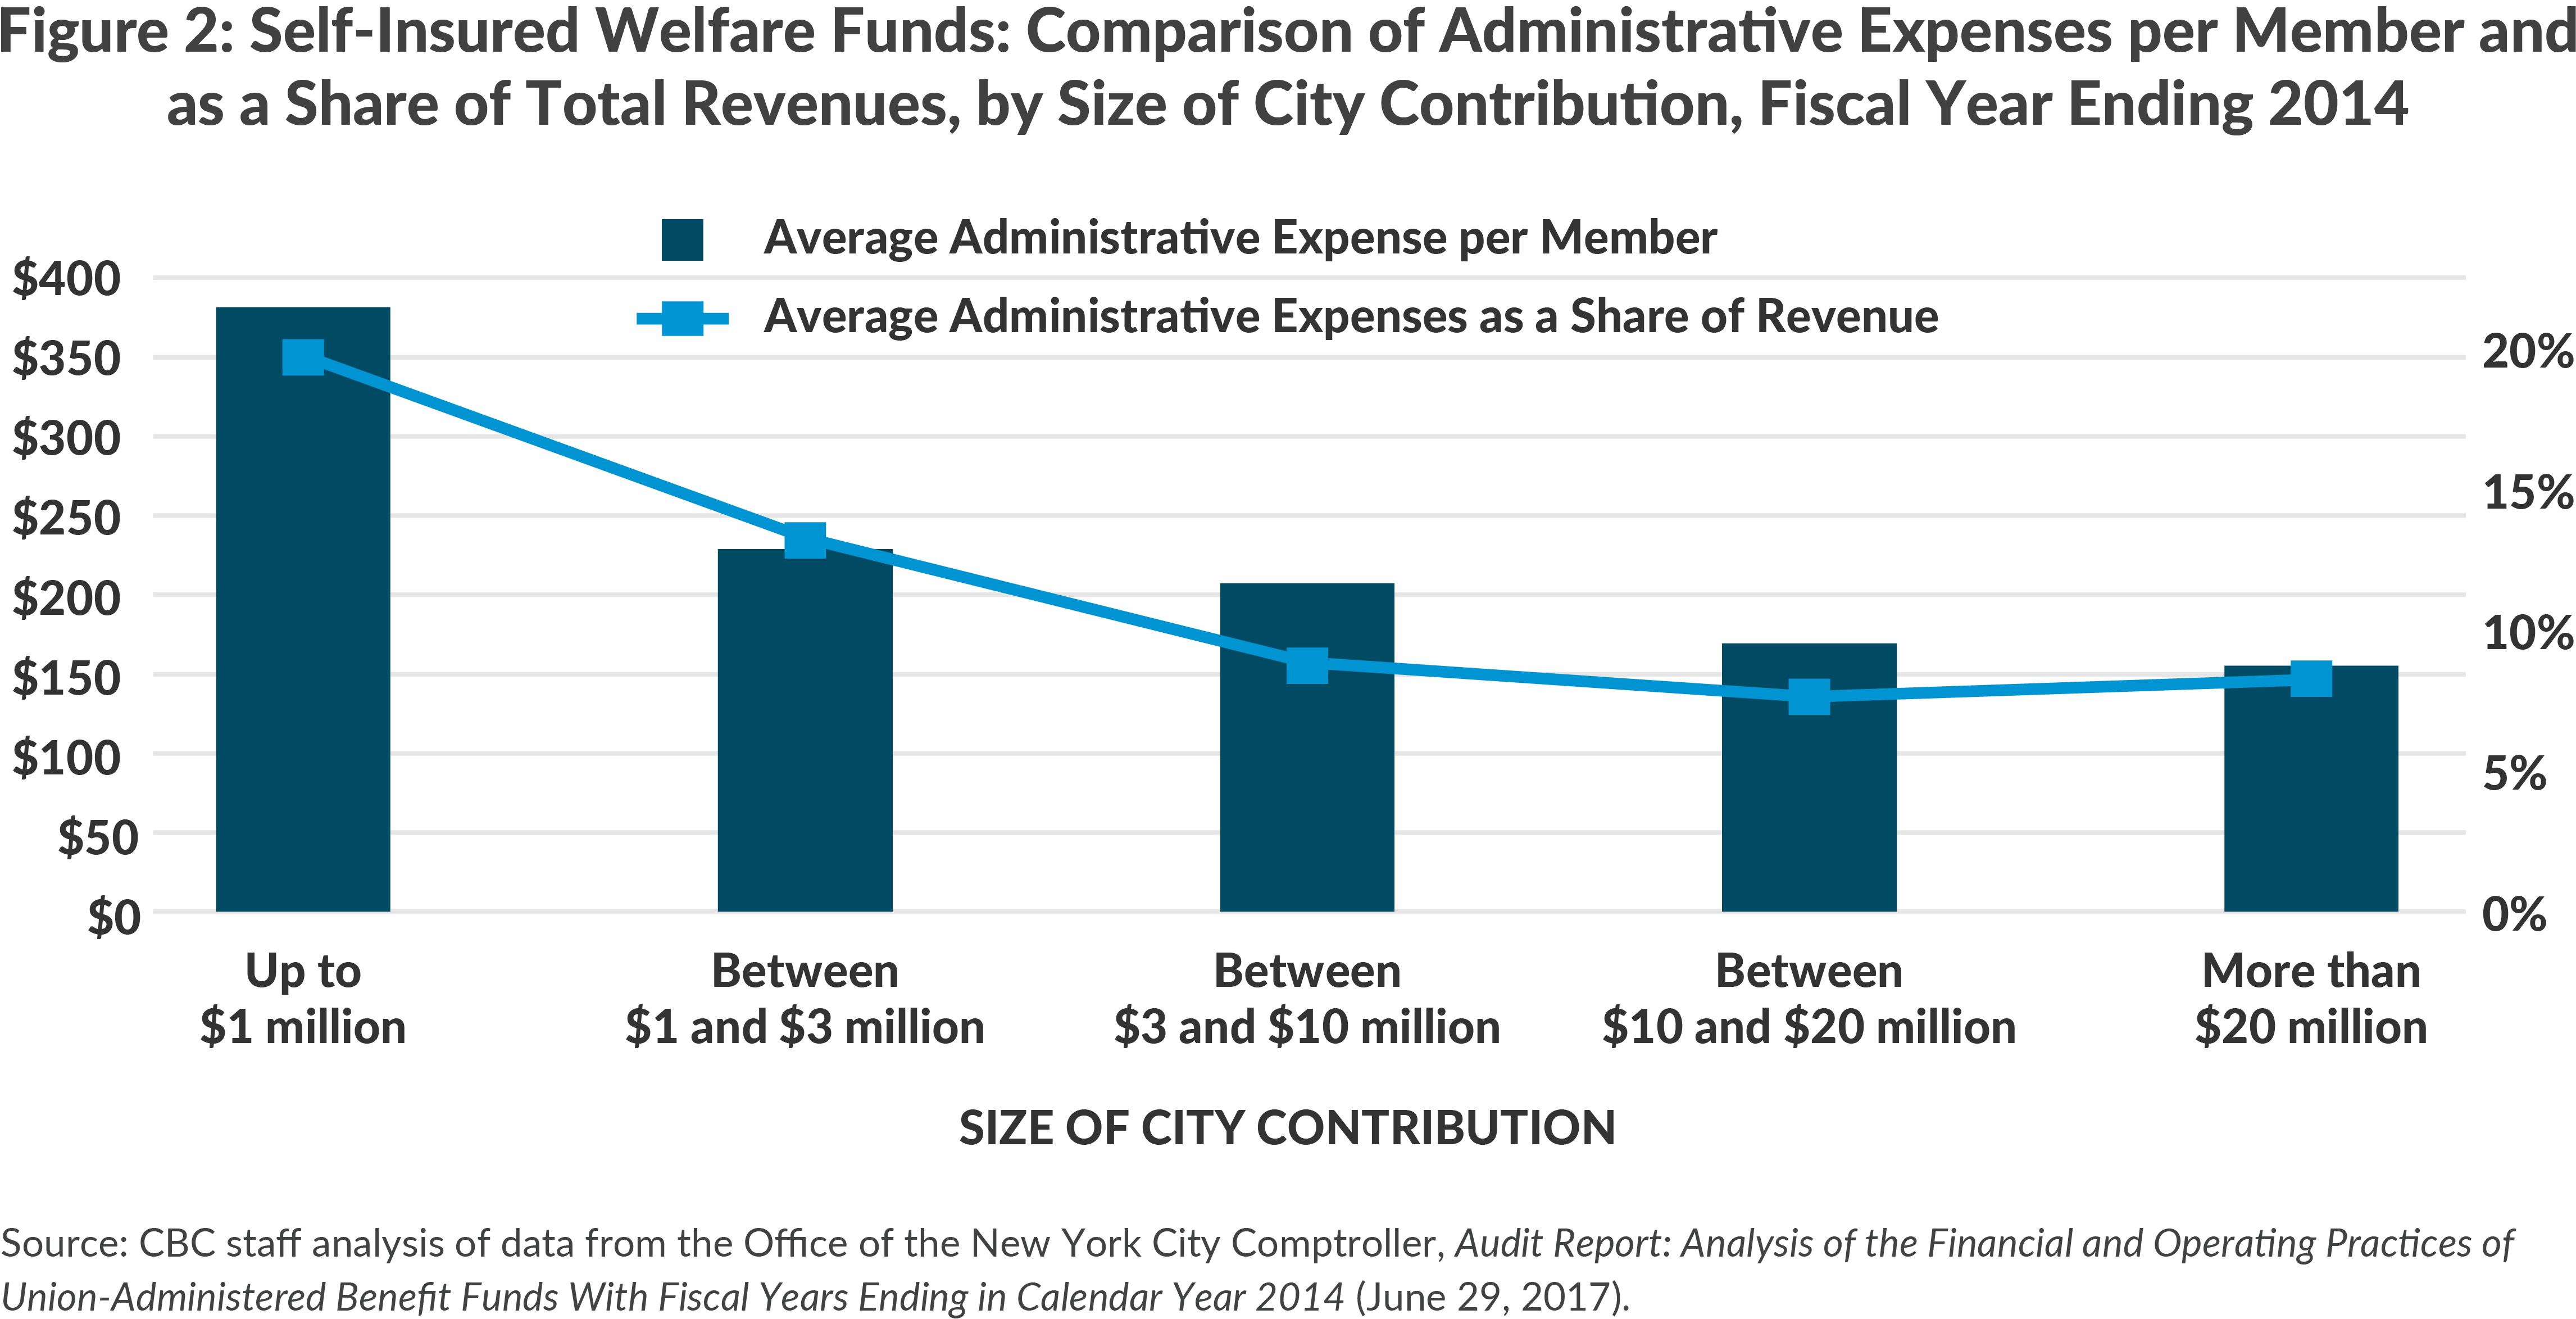 Figure 2: Self-Insured Welfare Funds: Comparison of Administrative Expenses per Member and as a Share of Total Revenues, by Size of City Contribution, Fiscal Year Ending 2014